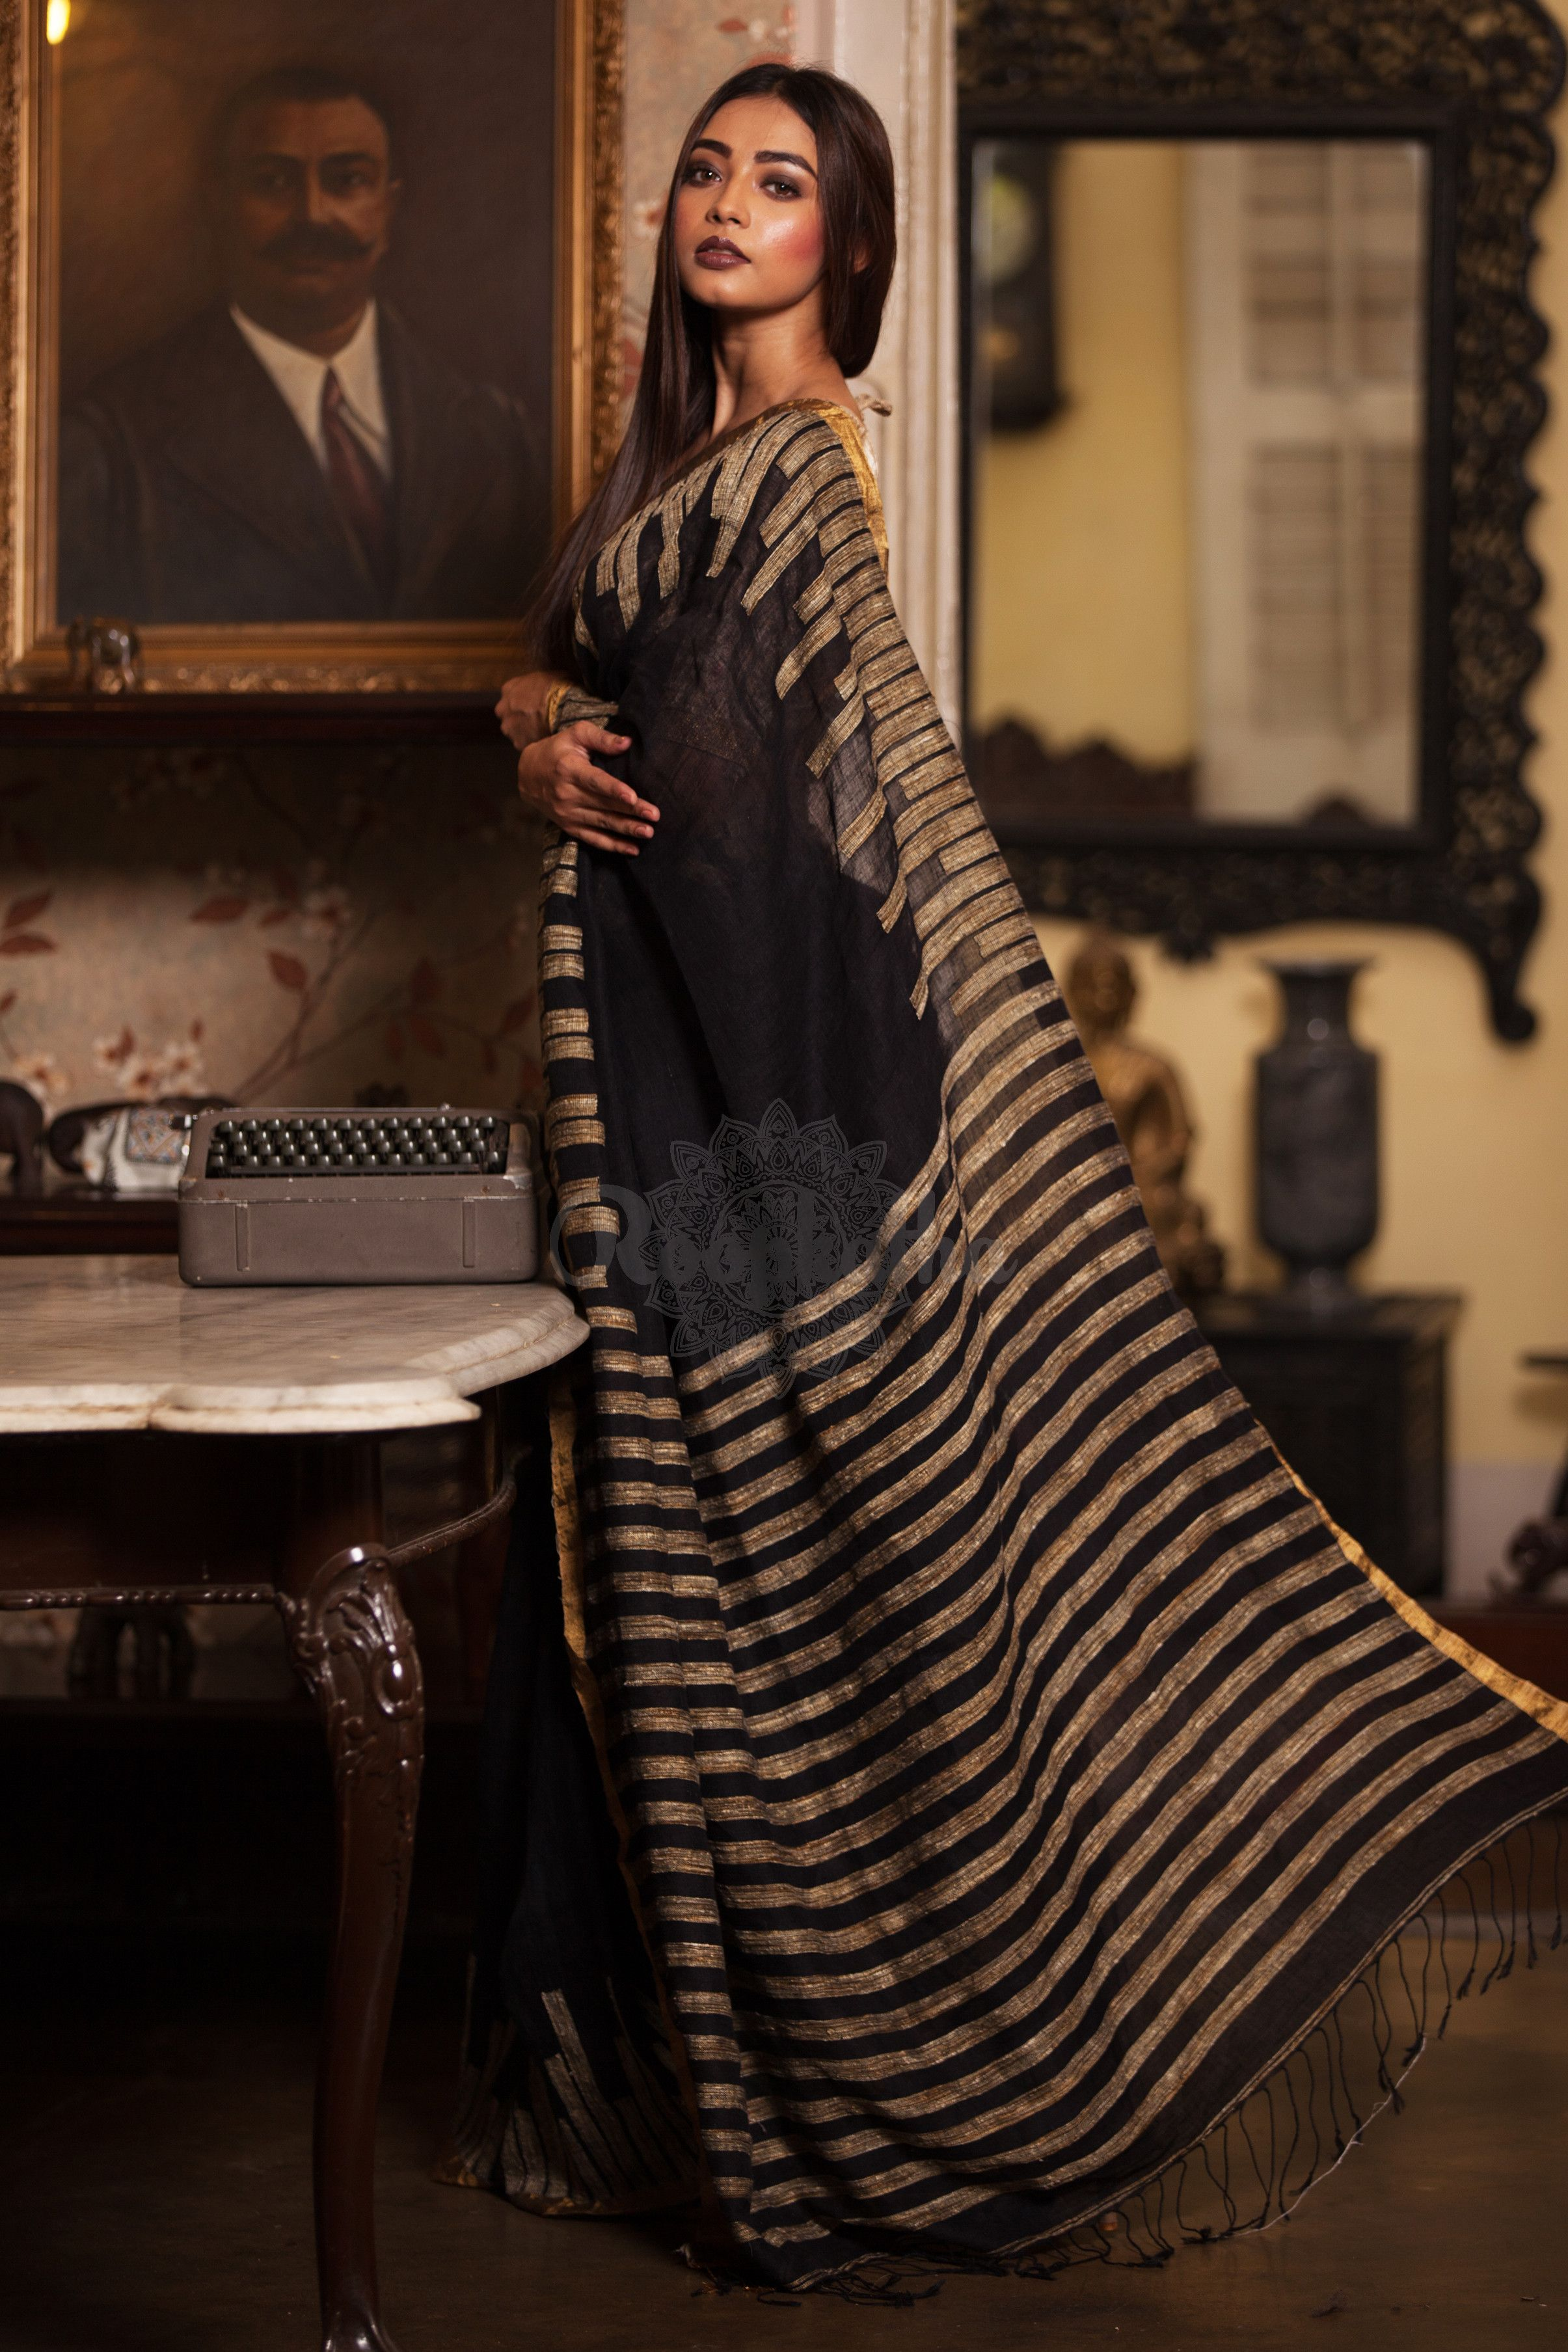 b642d3d43fa761 Black Linen Saree With Woven Design - Roopkatha - A Story of Art ...